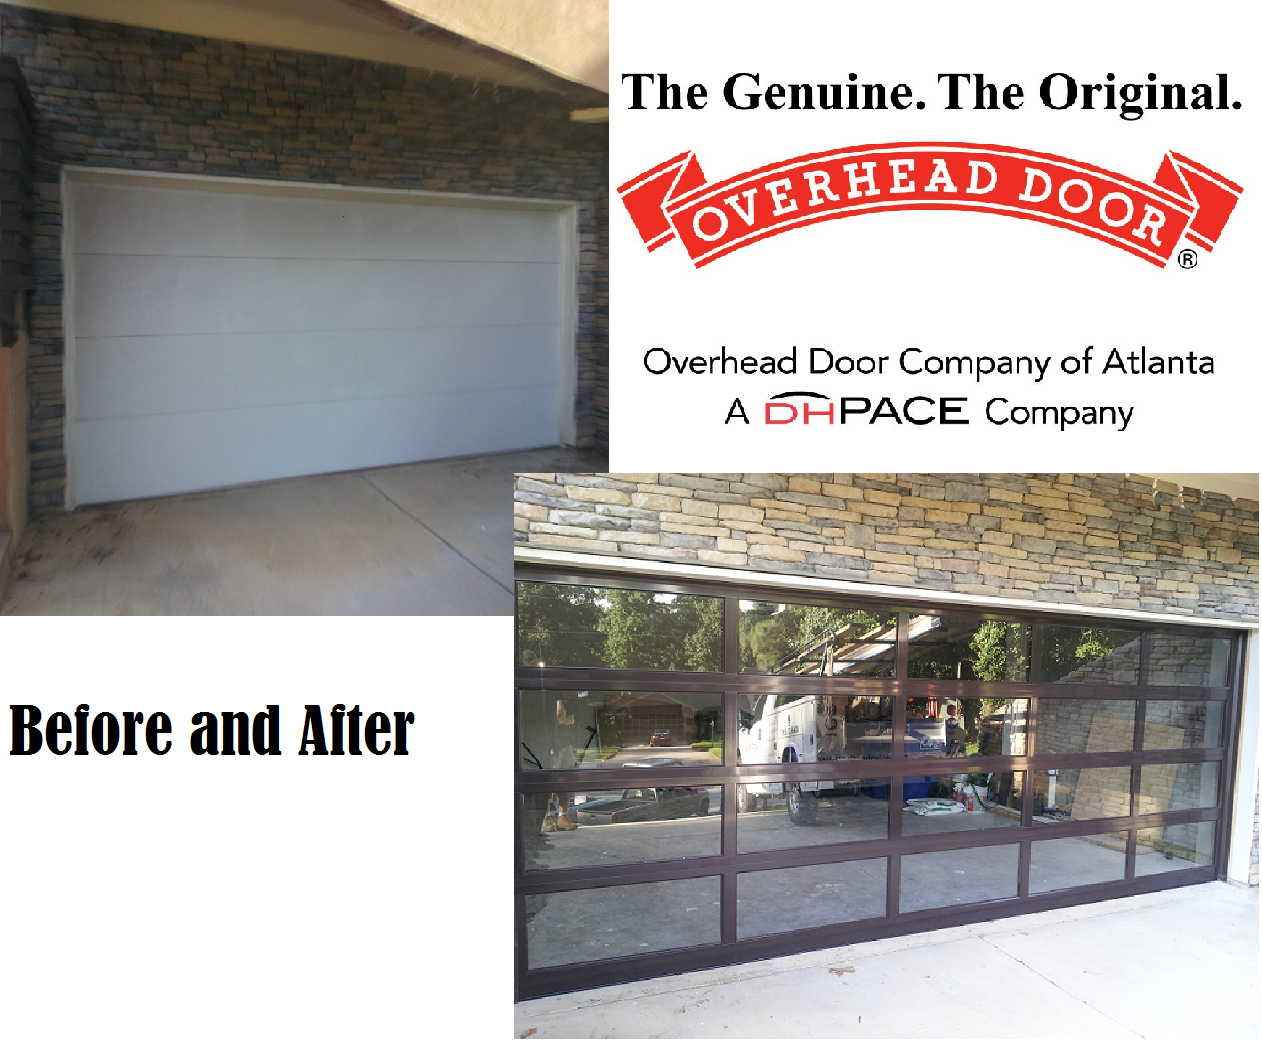 Overhead door company of greater hall county in